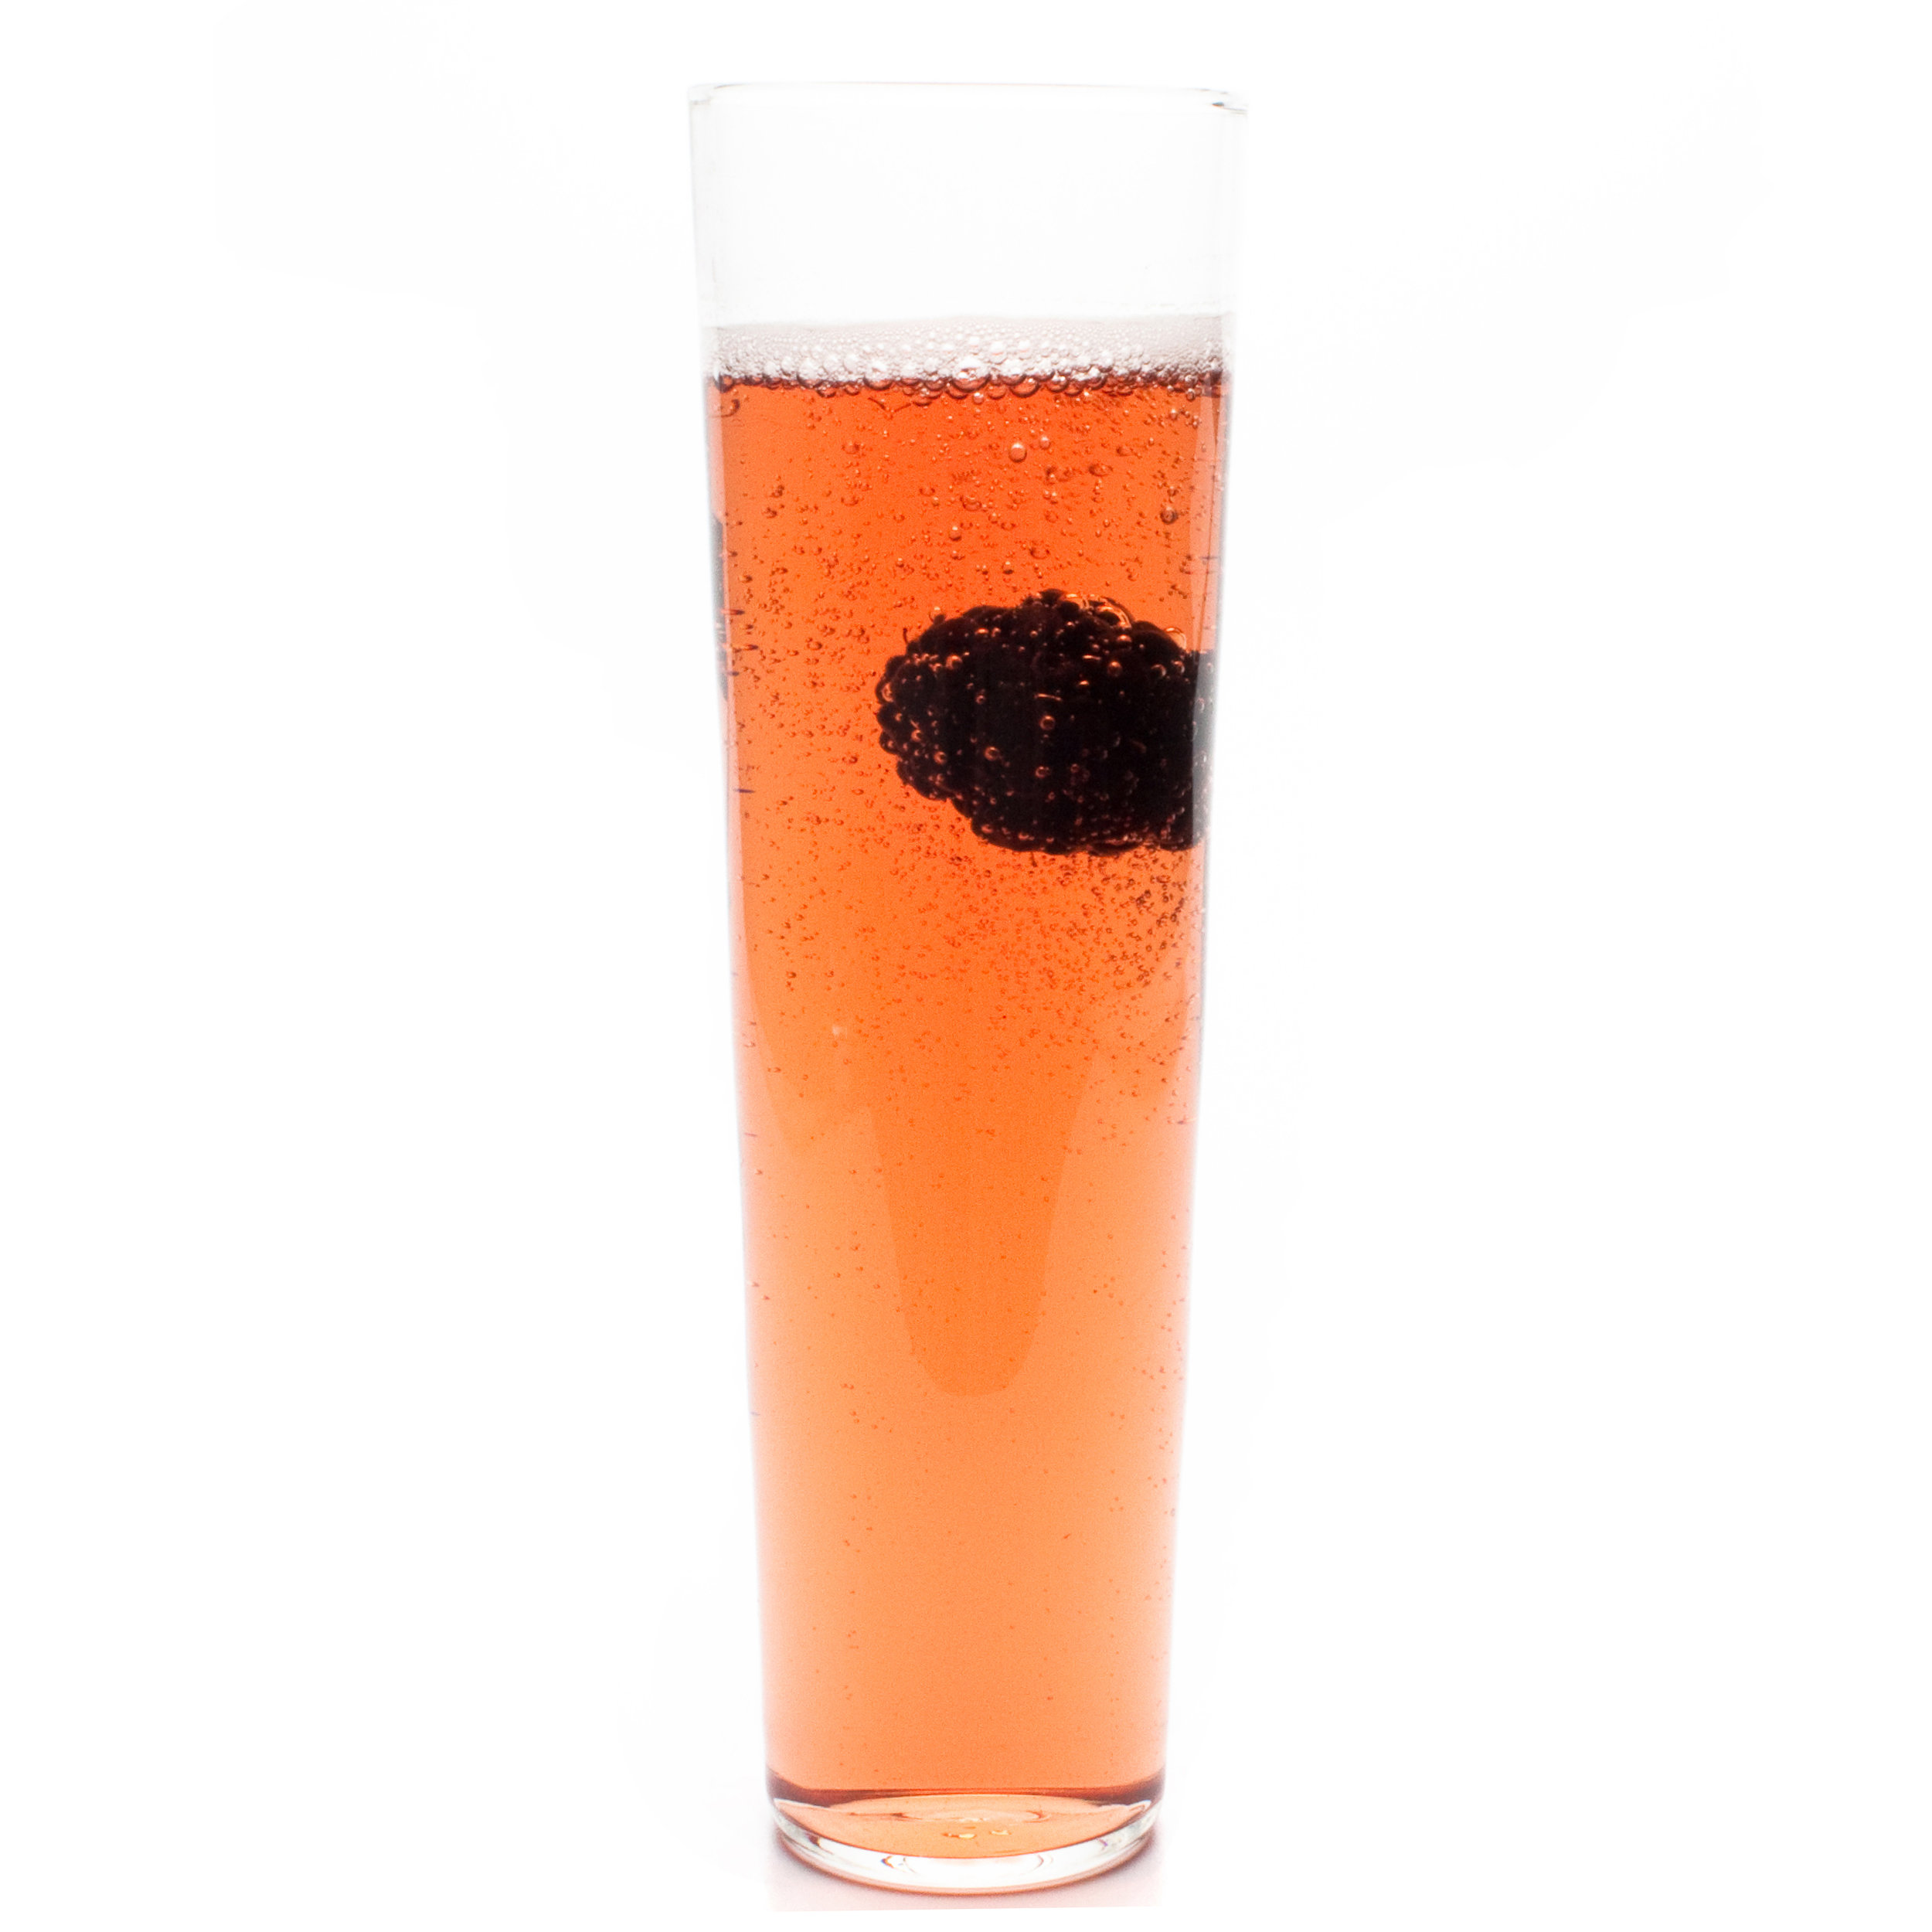 Blackberry Poblano Fizz